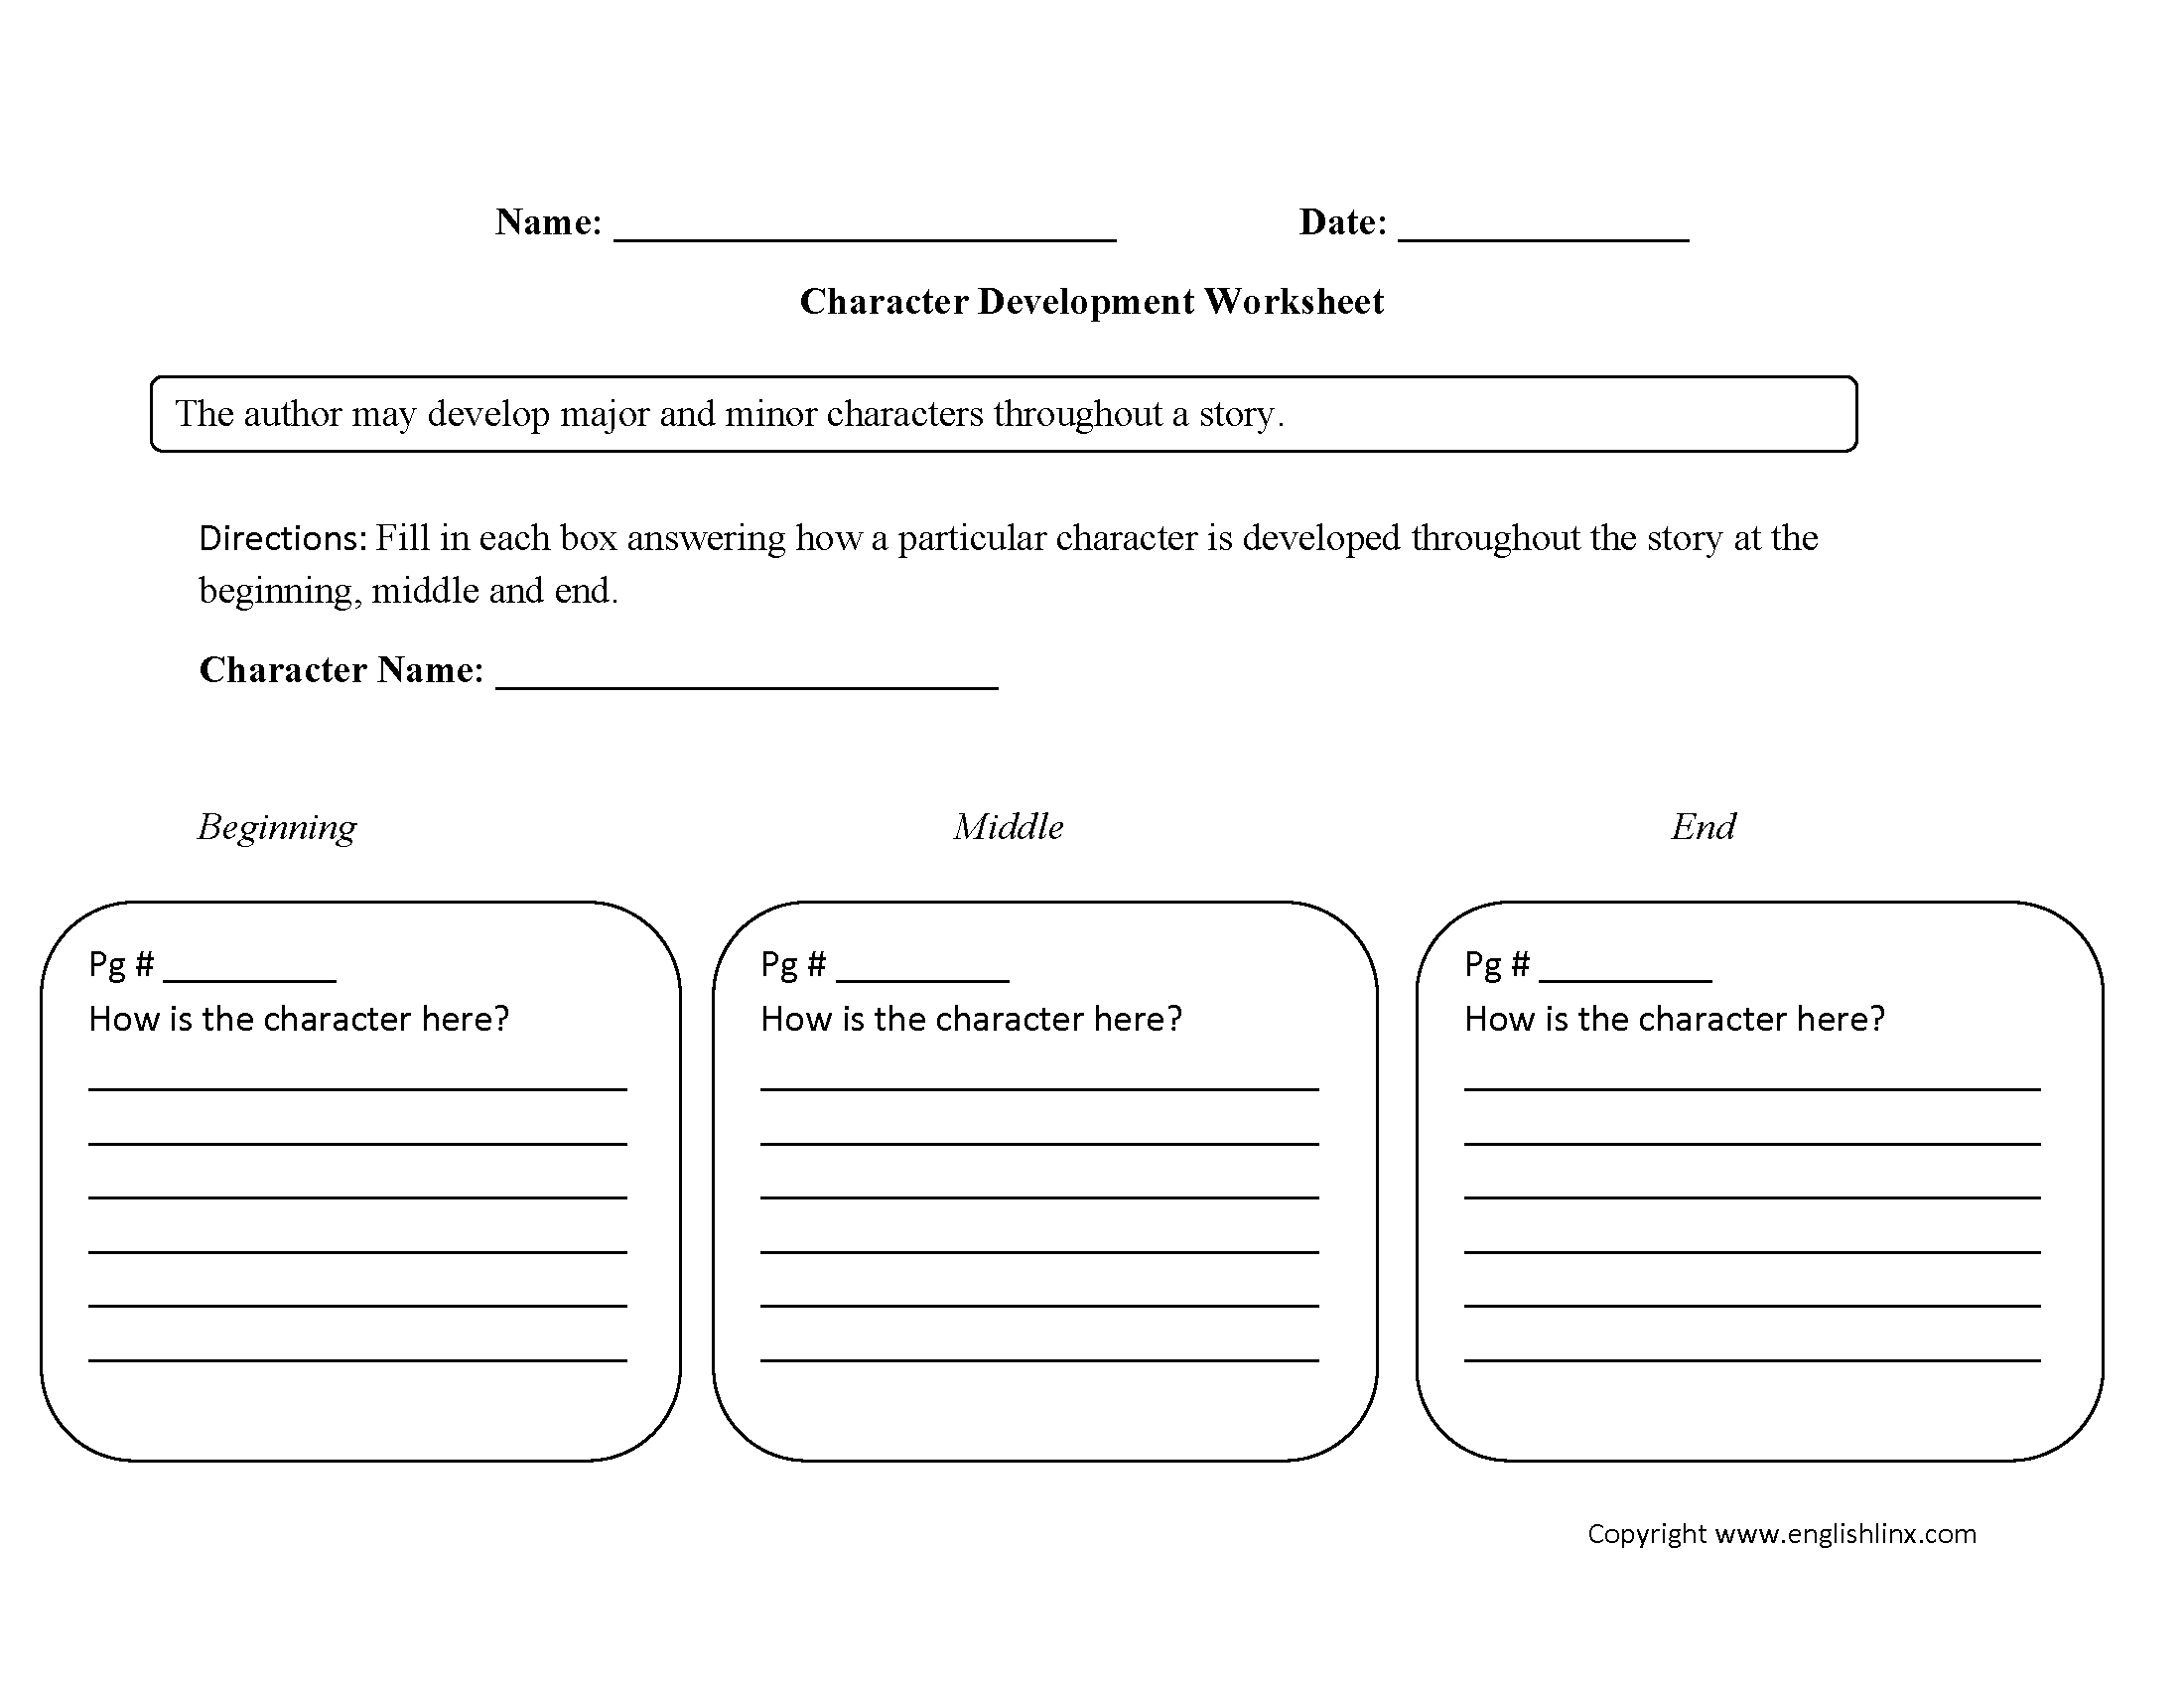 Worksheets Character Building Worksheets single character development analysis worksheets giulia worksheets